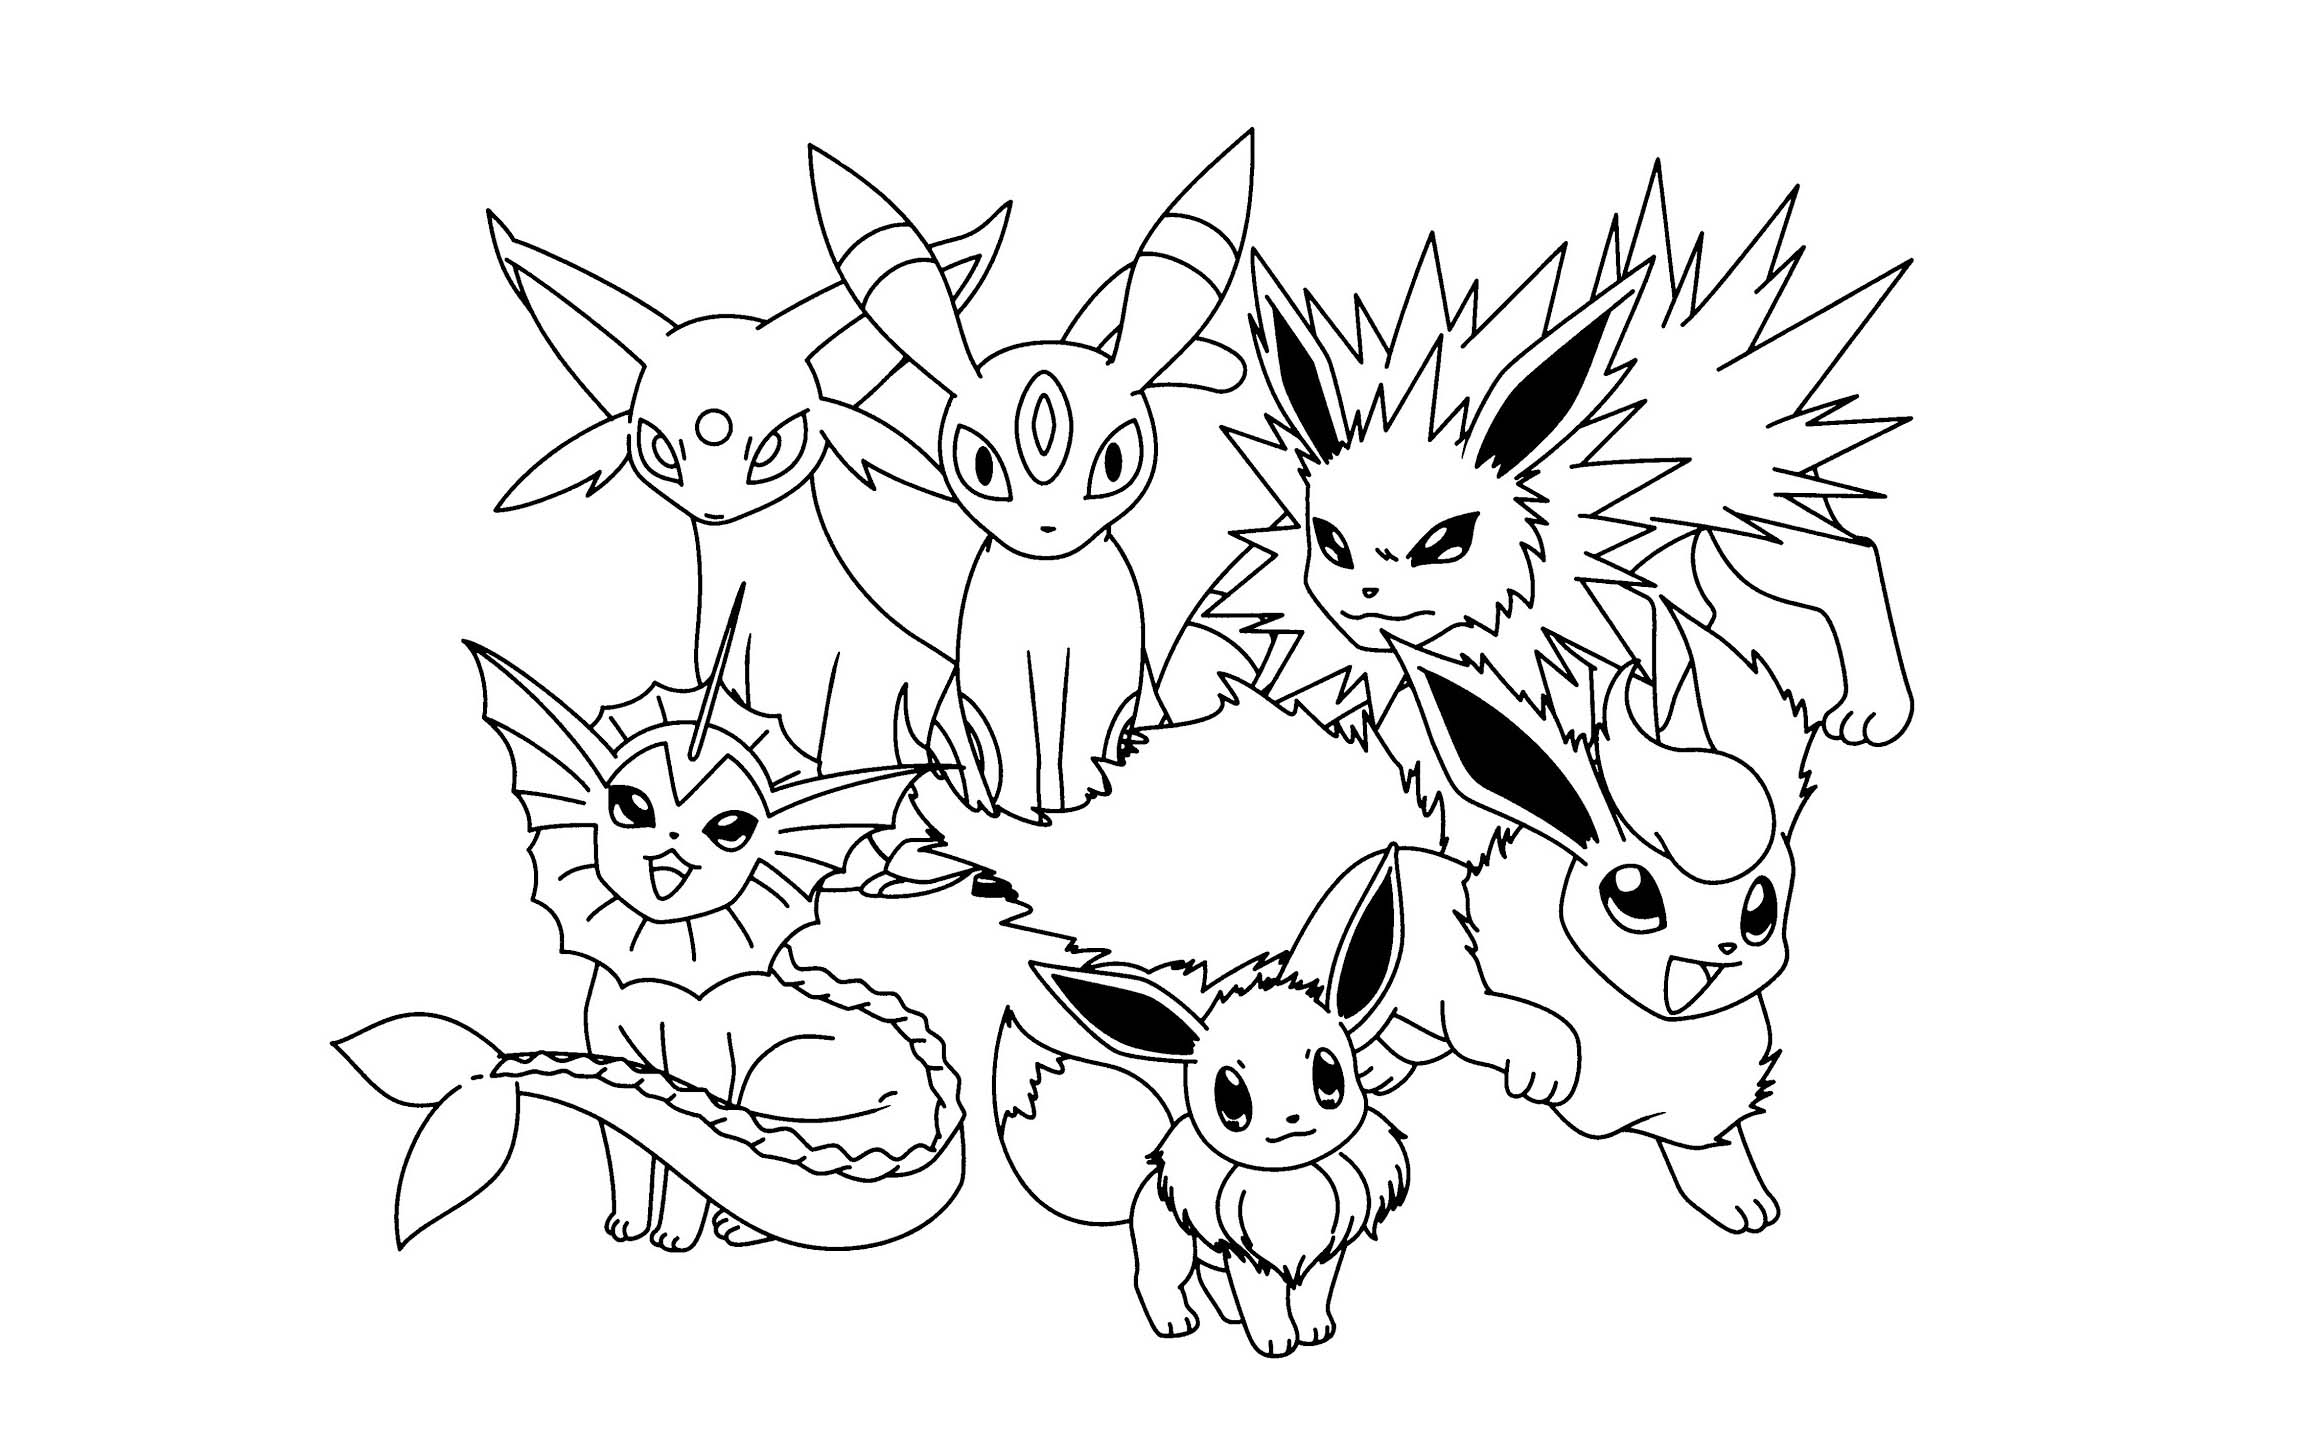 free coloring pokemon pages free legendary pokemon coloring pages for kids free coloring pokemon pages